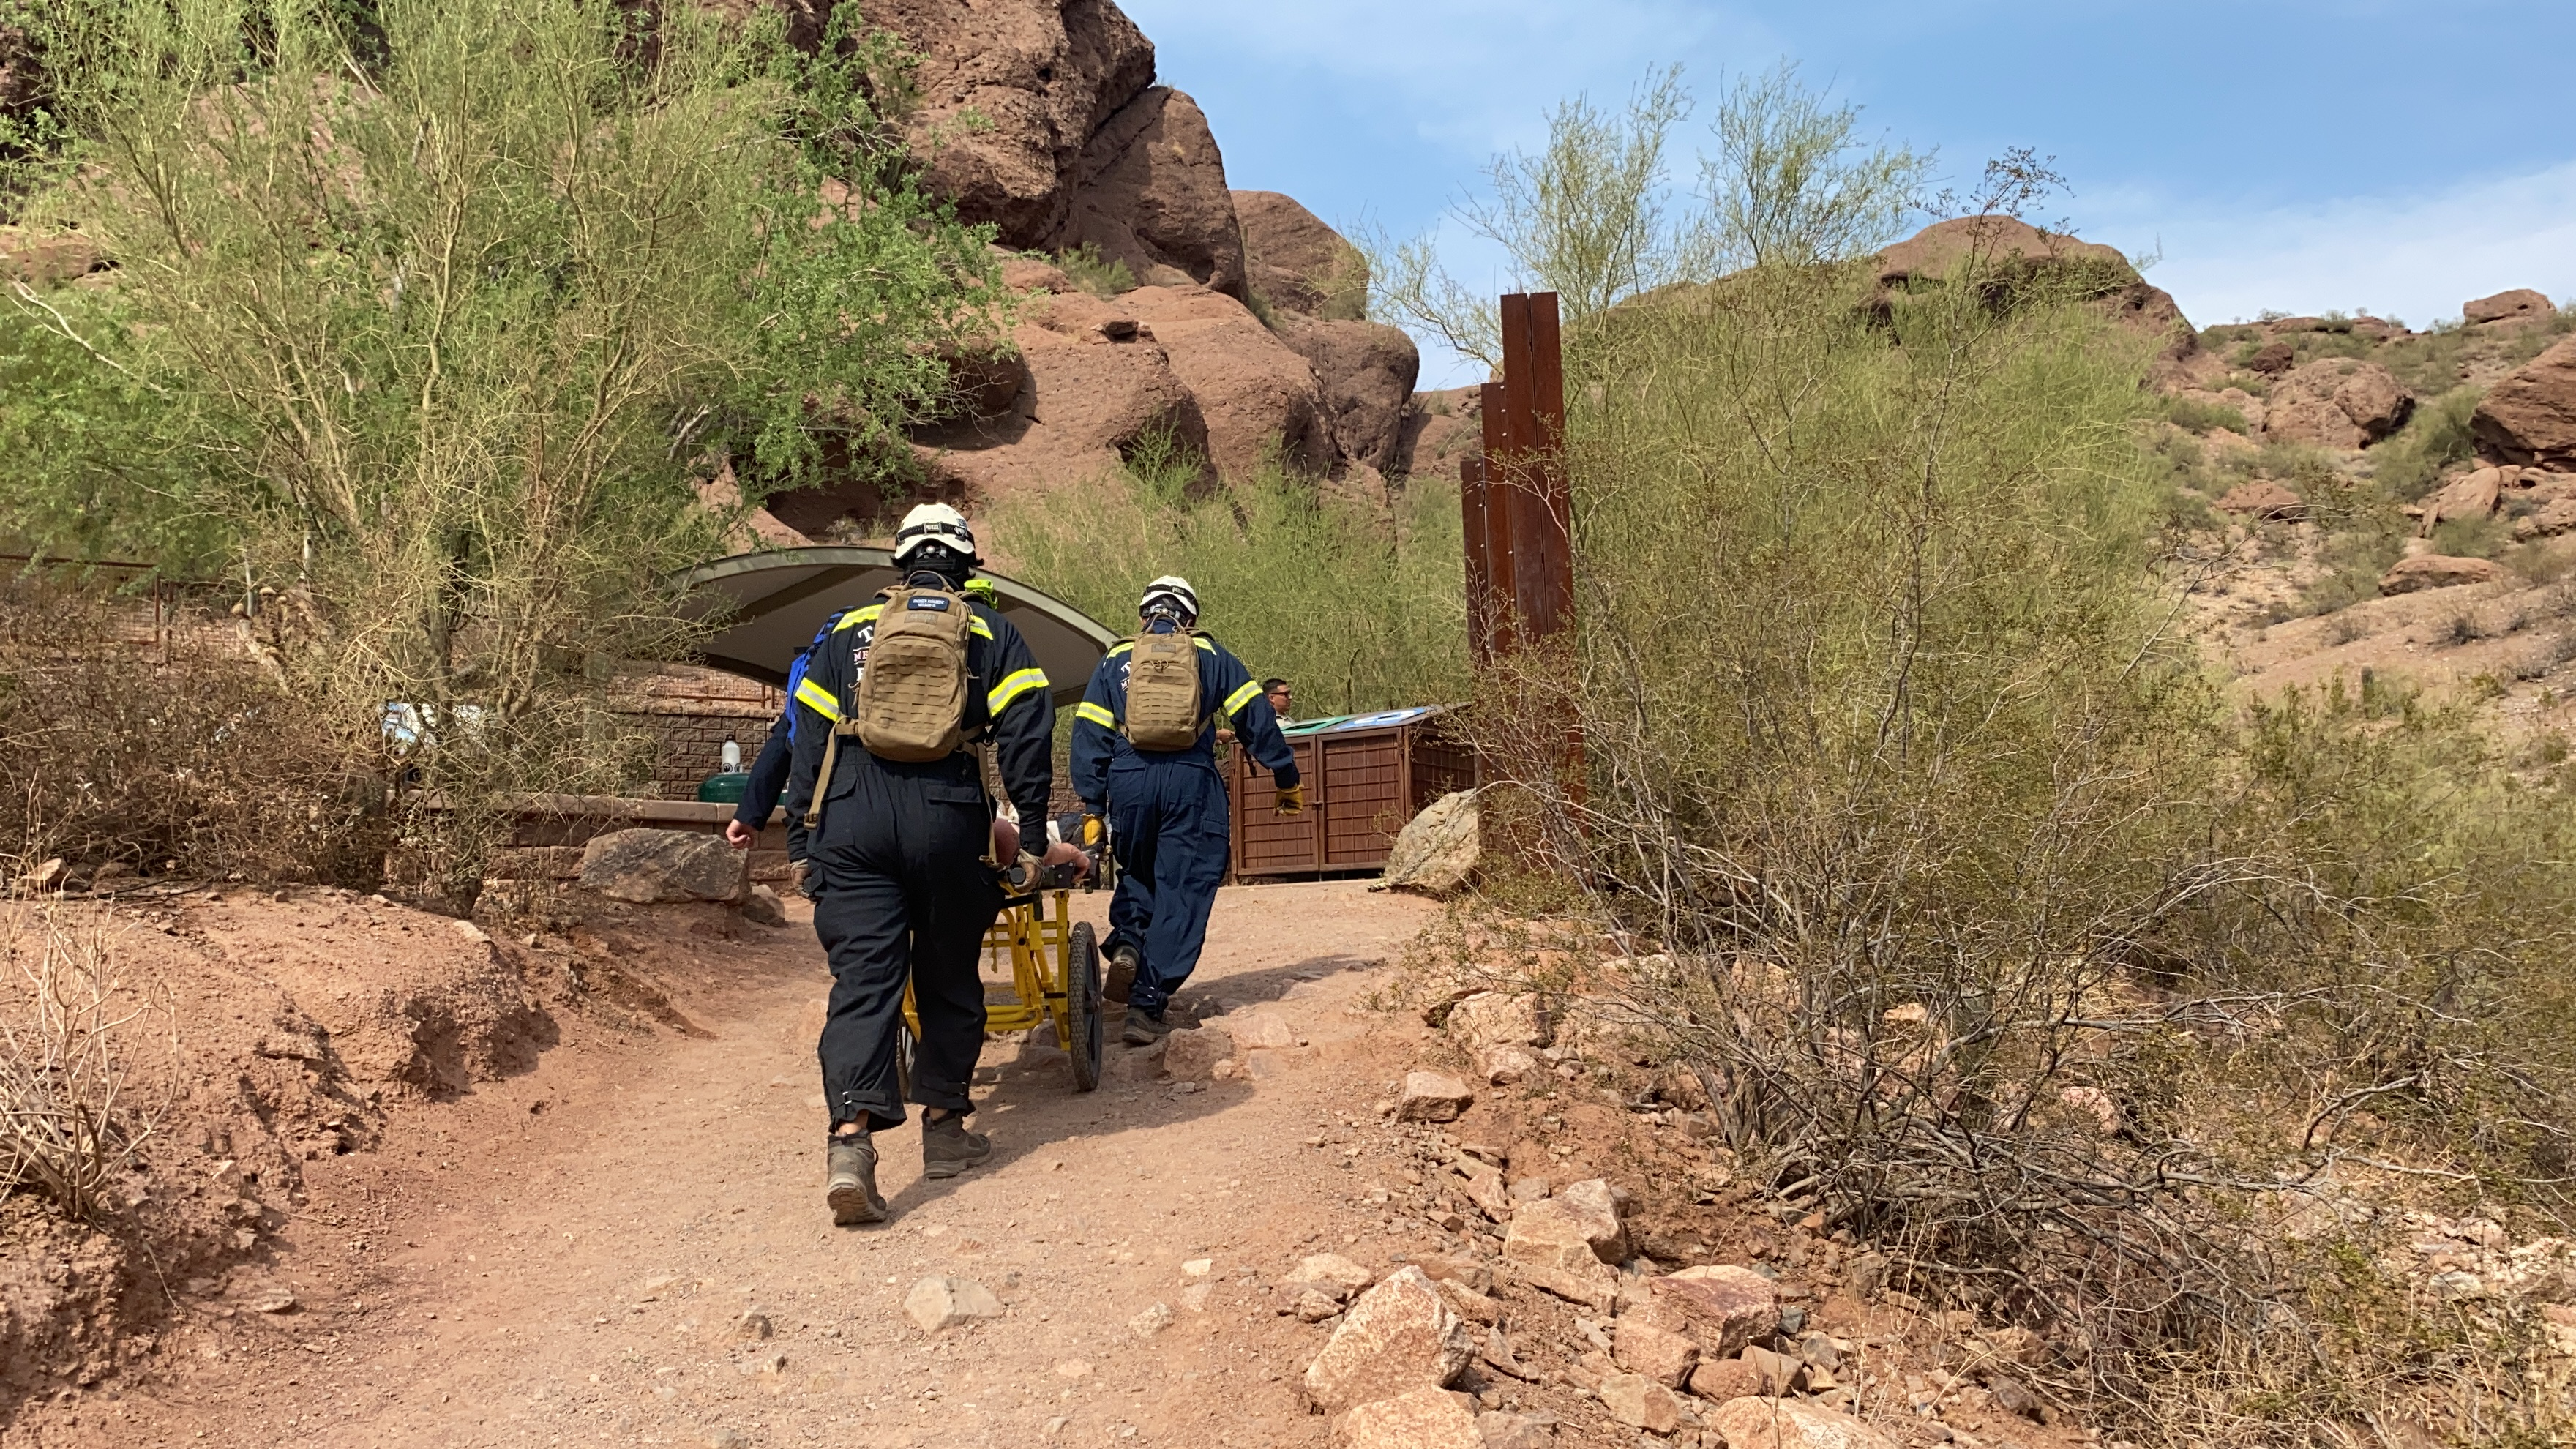 Normally i'm in the kitchen cooking on christmas but the year we did this, things were different. Overheated Hiker Rescued From Camelback Mountain